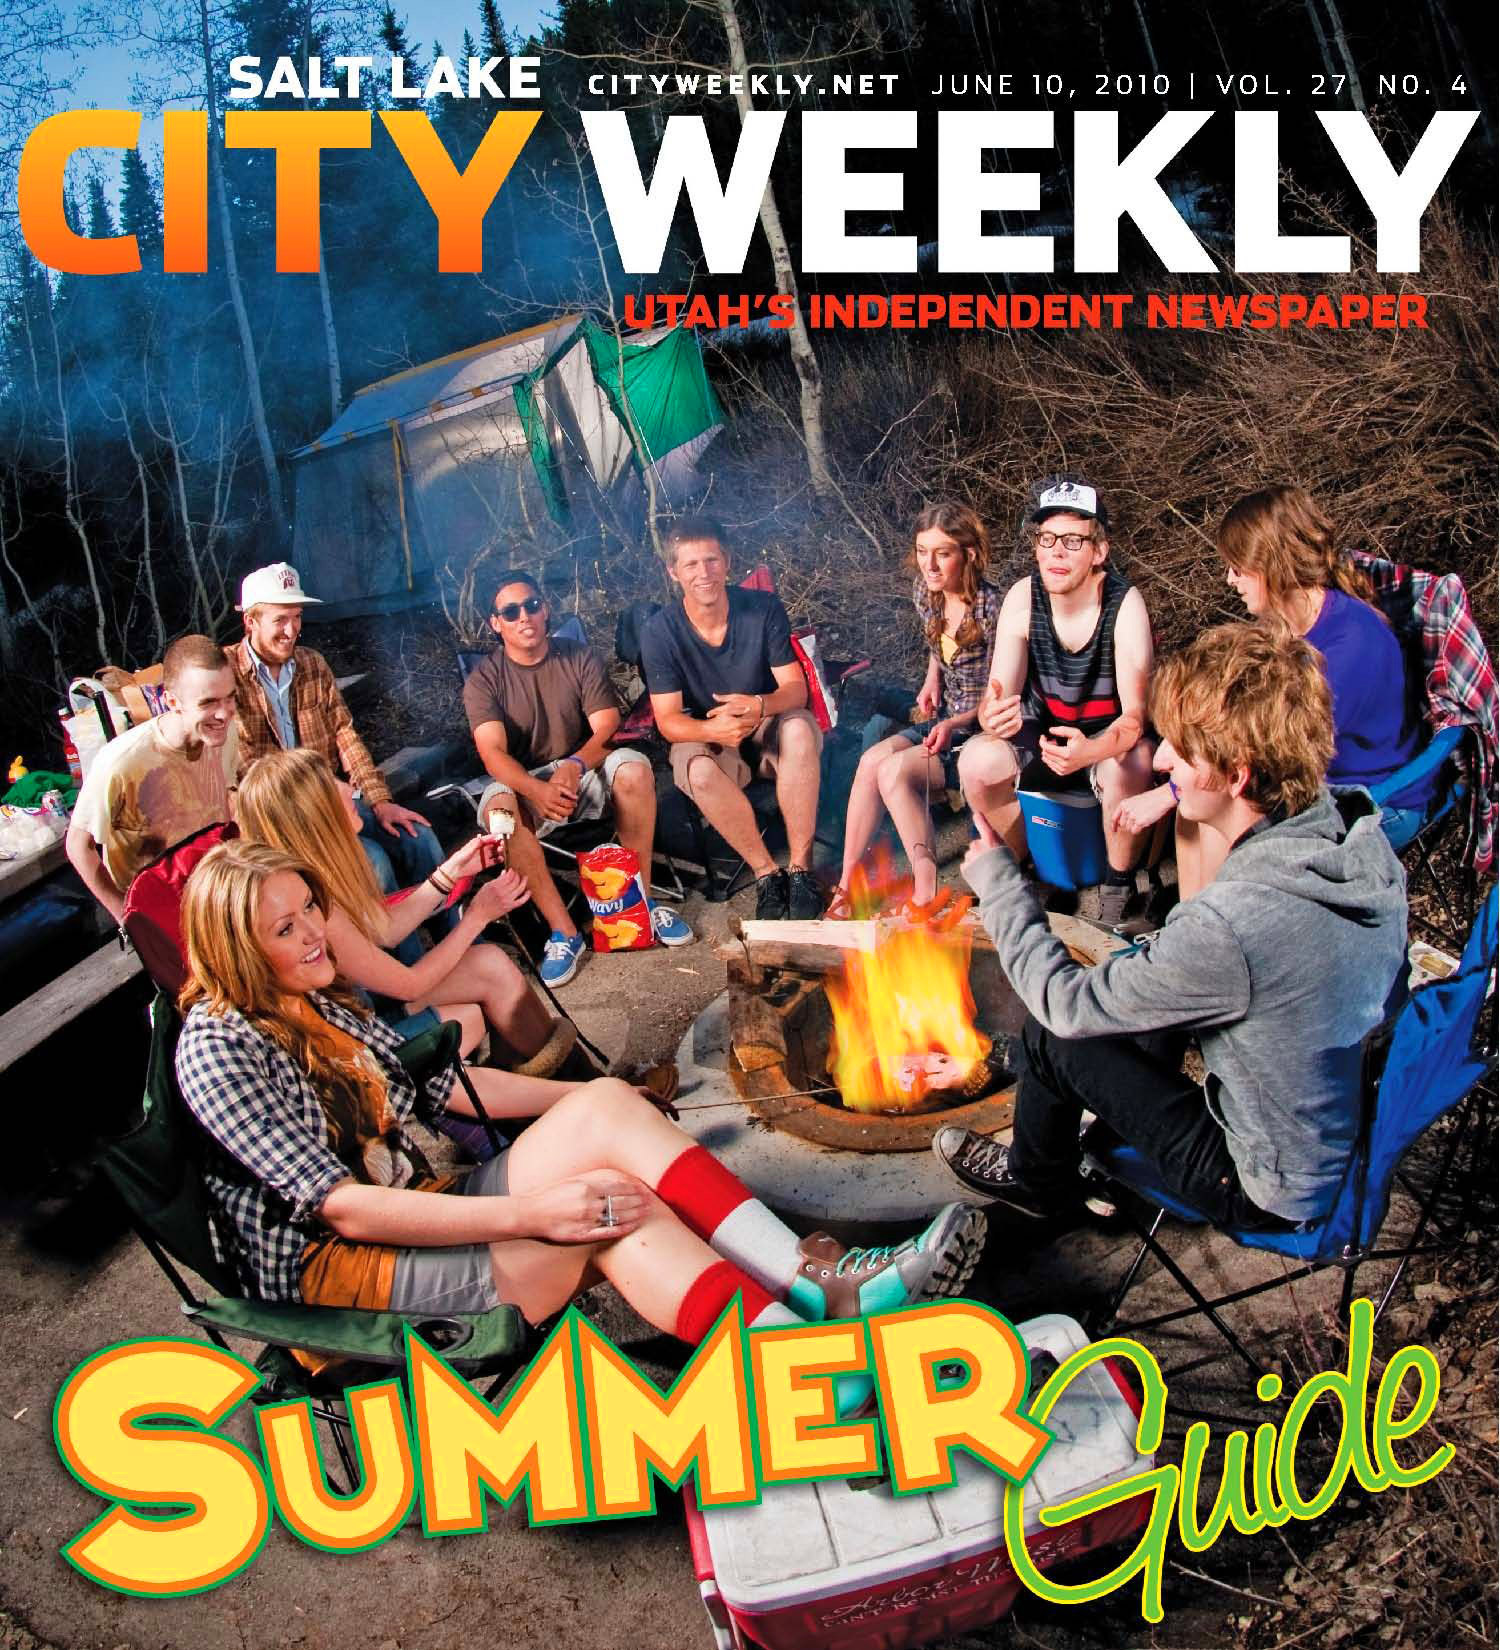 Salt Lake City Weekly Summer Guide